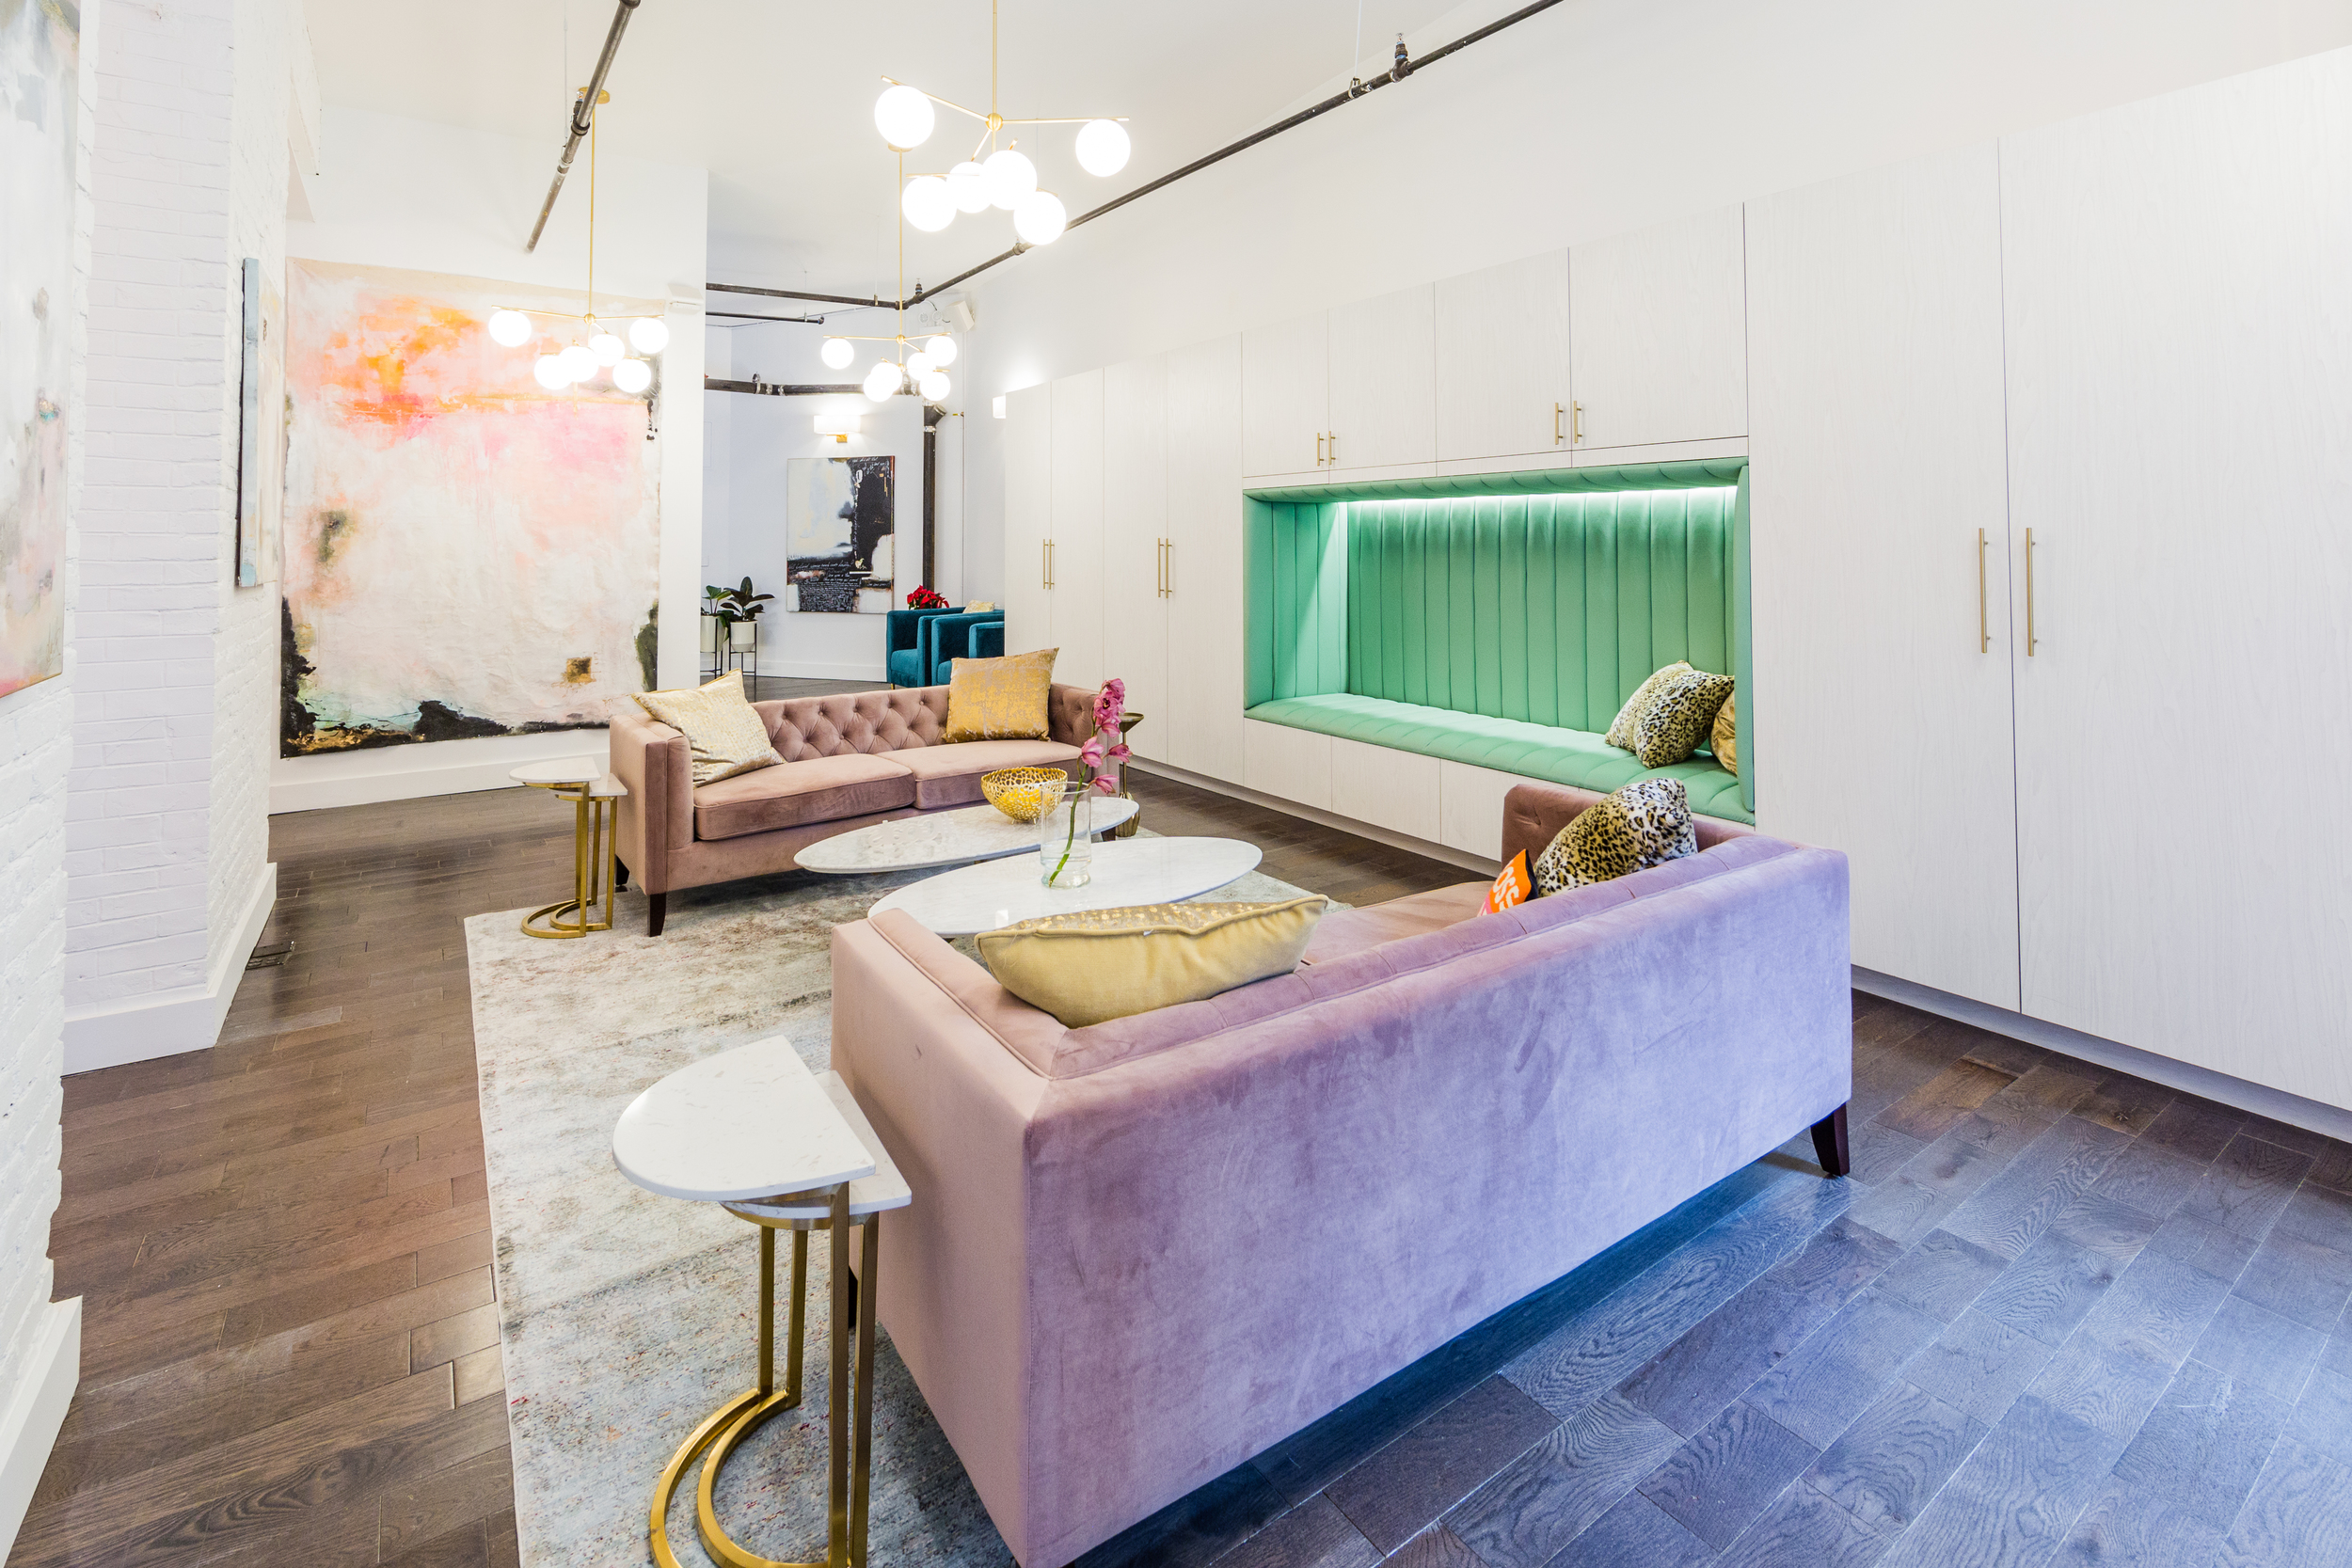 Luminary_interiors_openletr_interview_Cate_Luzio_living_space.jpg